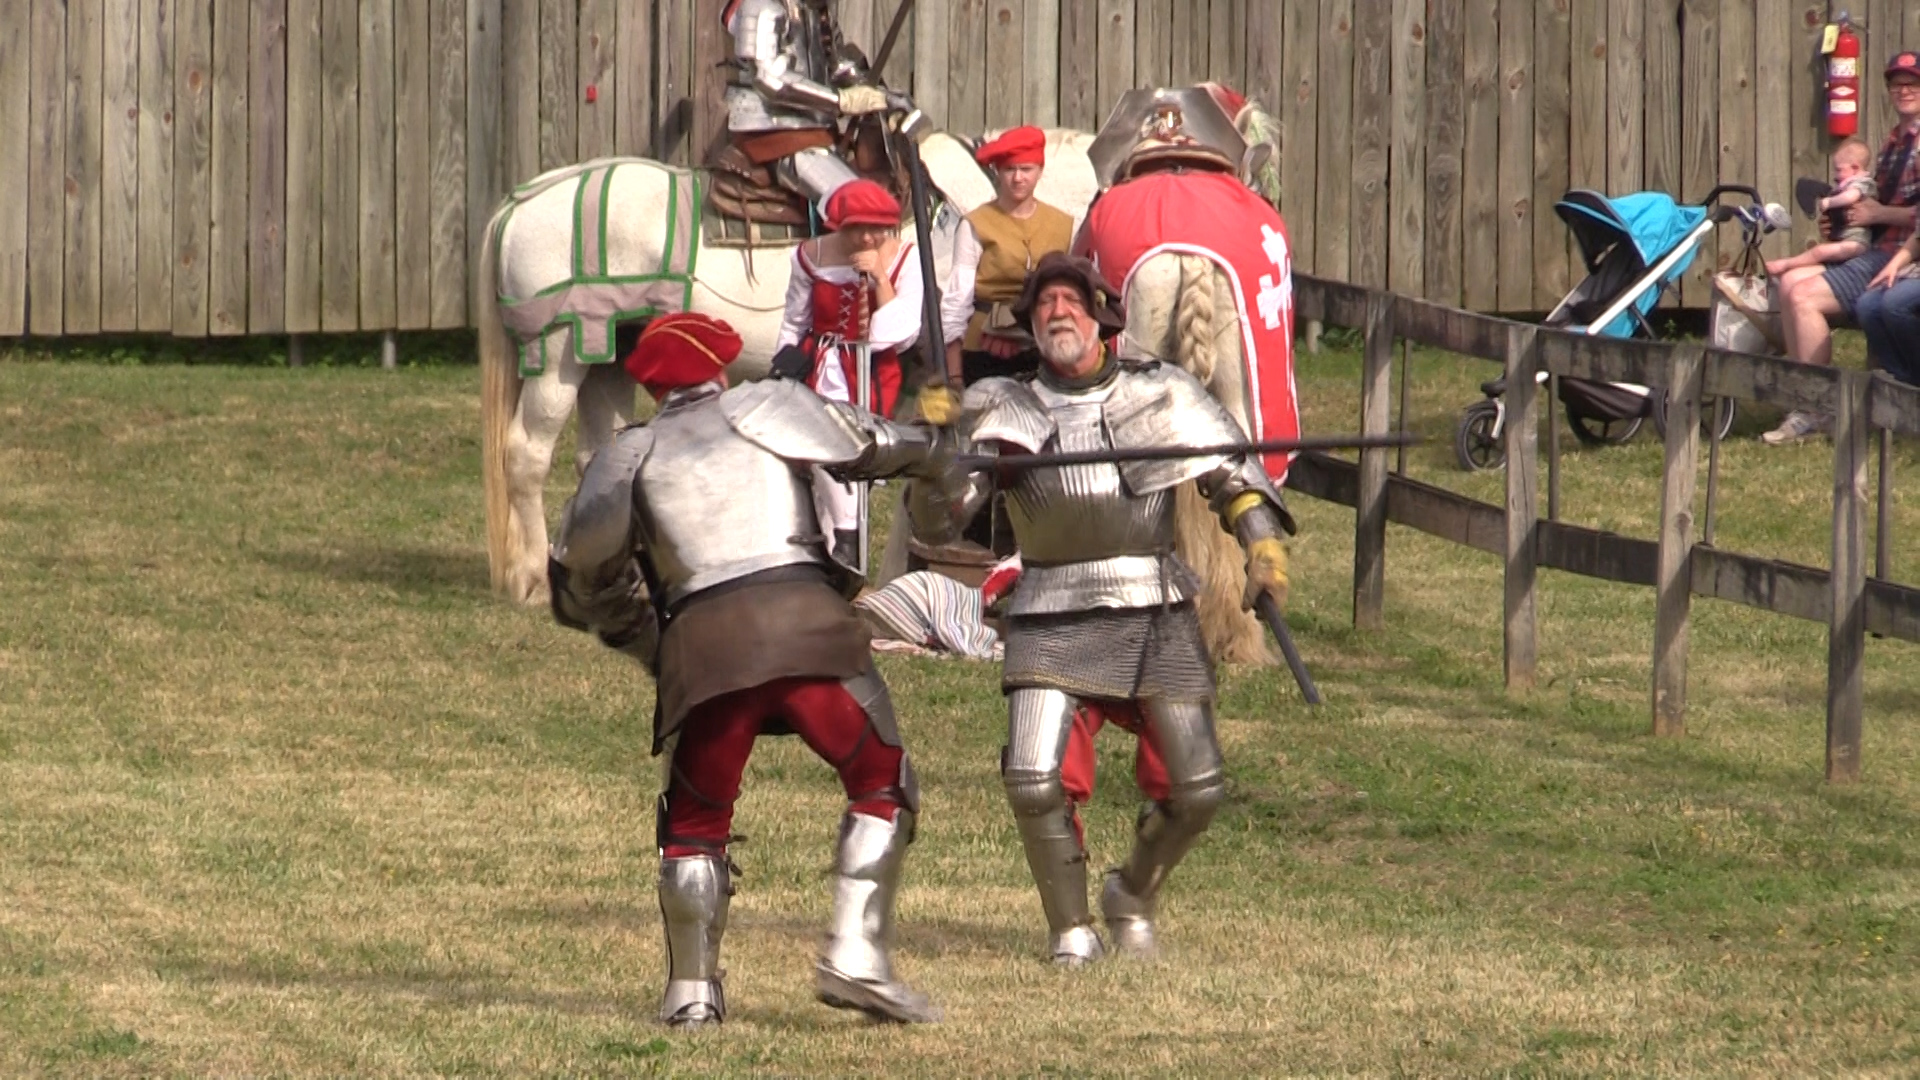 VIDEO: Scenes from the 2016 Tennessee Renaissance Festival